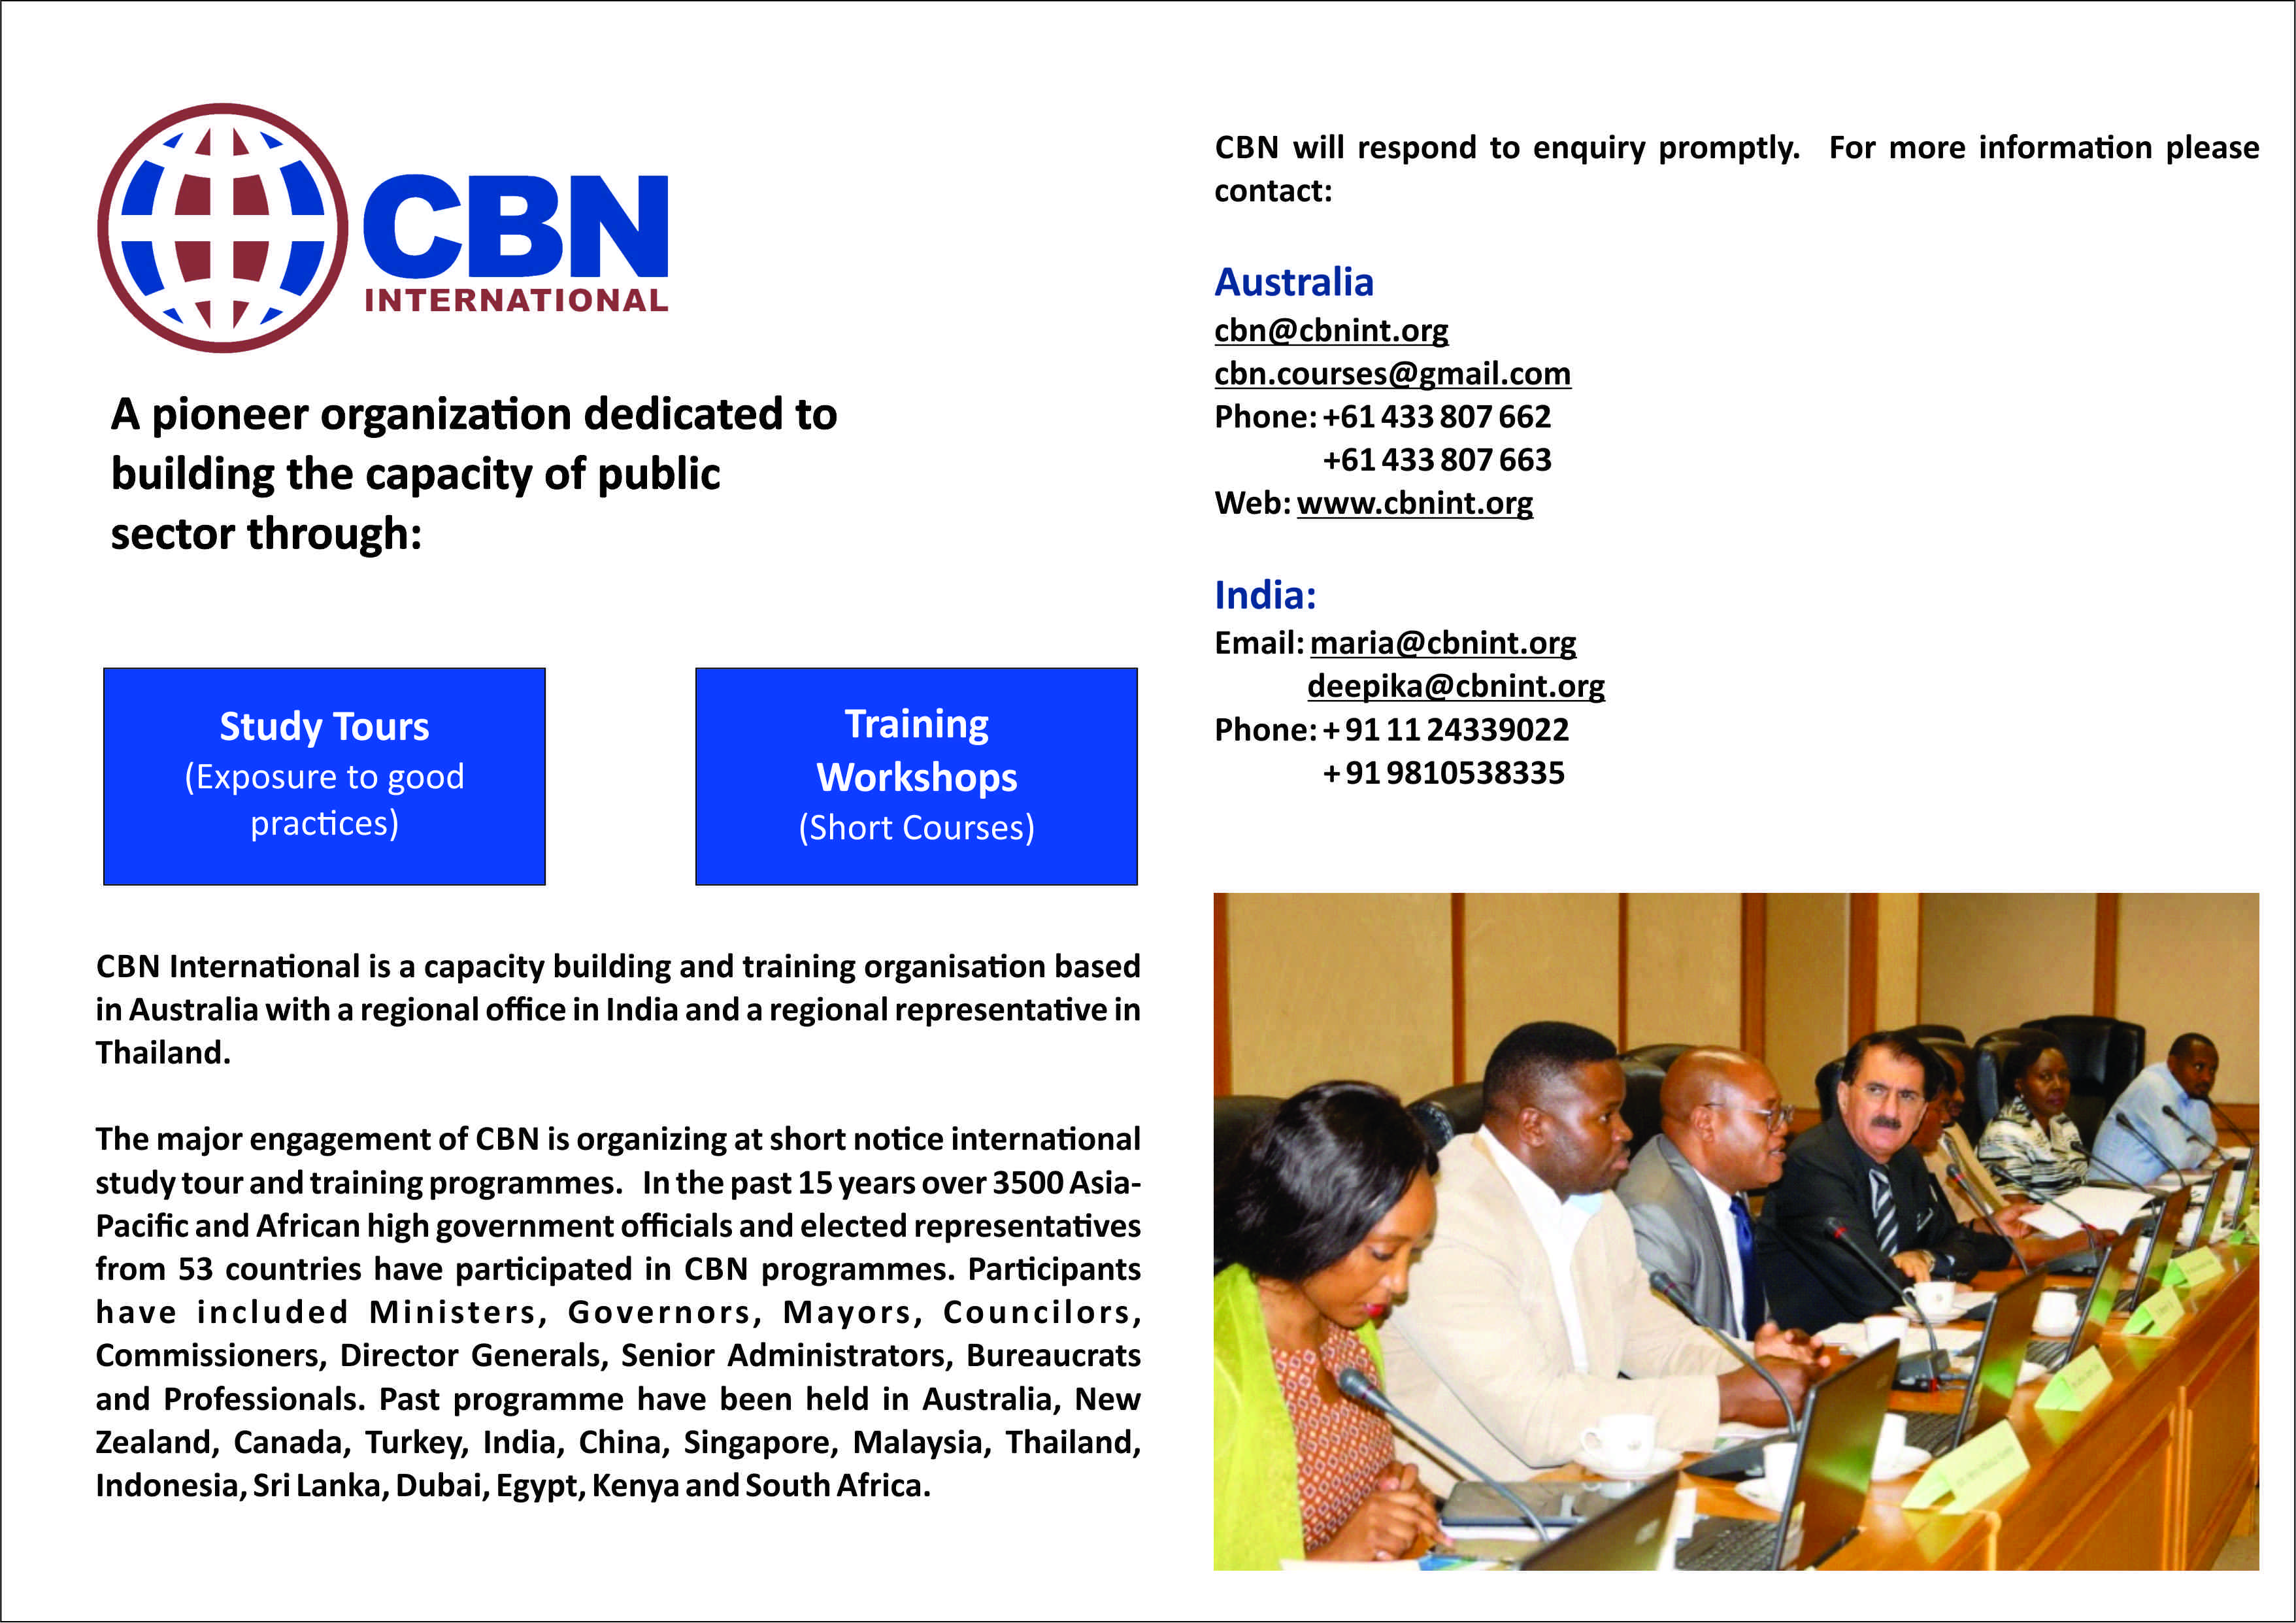 International Study Tour and Training programme organized by CBN International on Financing of Infrastructure and Provision of Basic Services in Dubai and Thailand